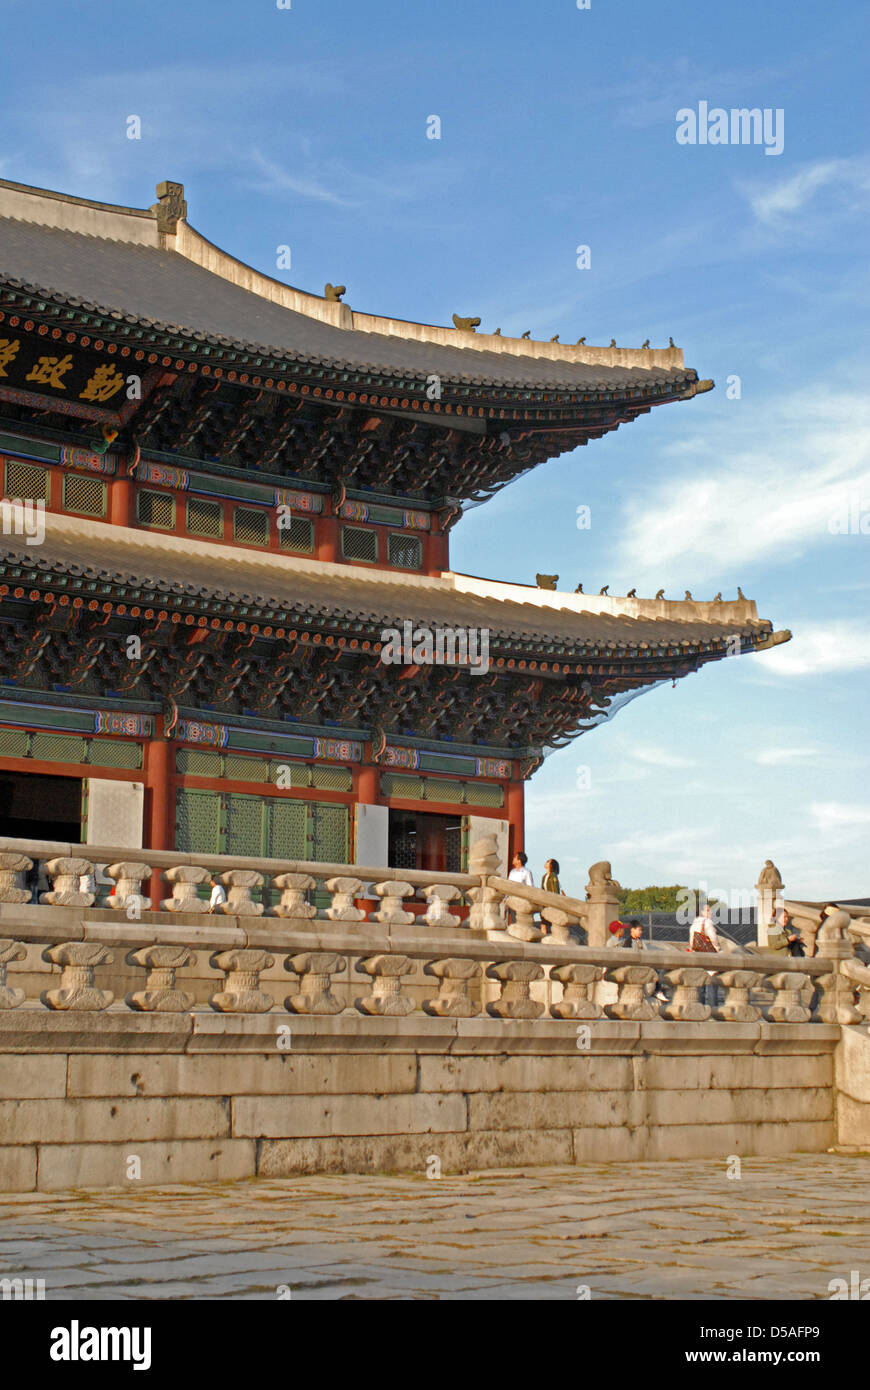 Main audience hall in Gyeongbok Palace, Seoul, South Korea - Stock Image